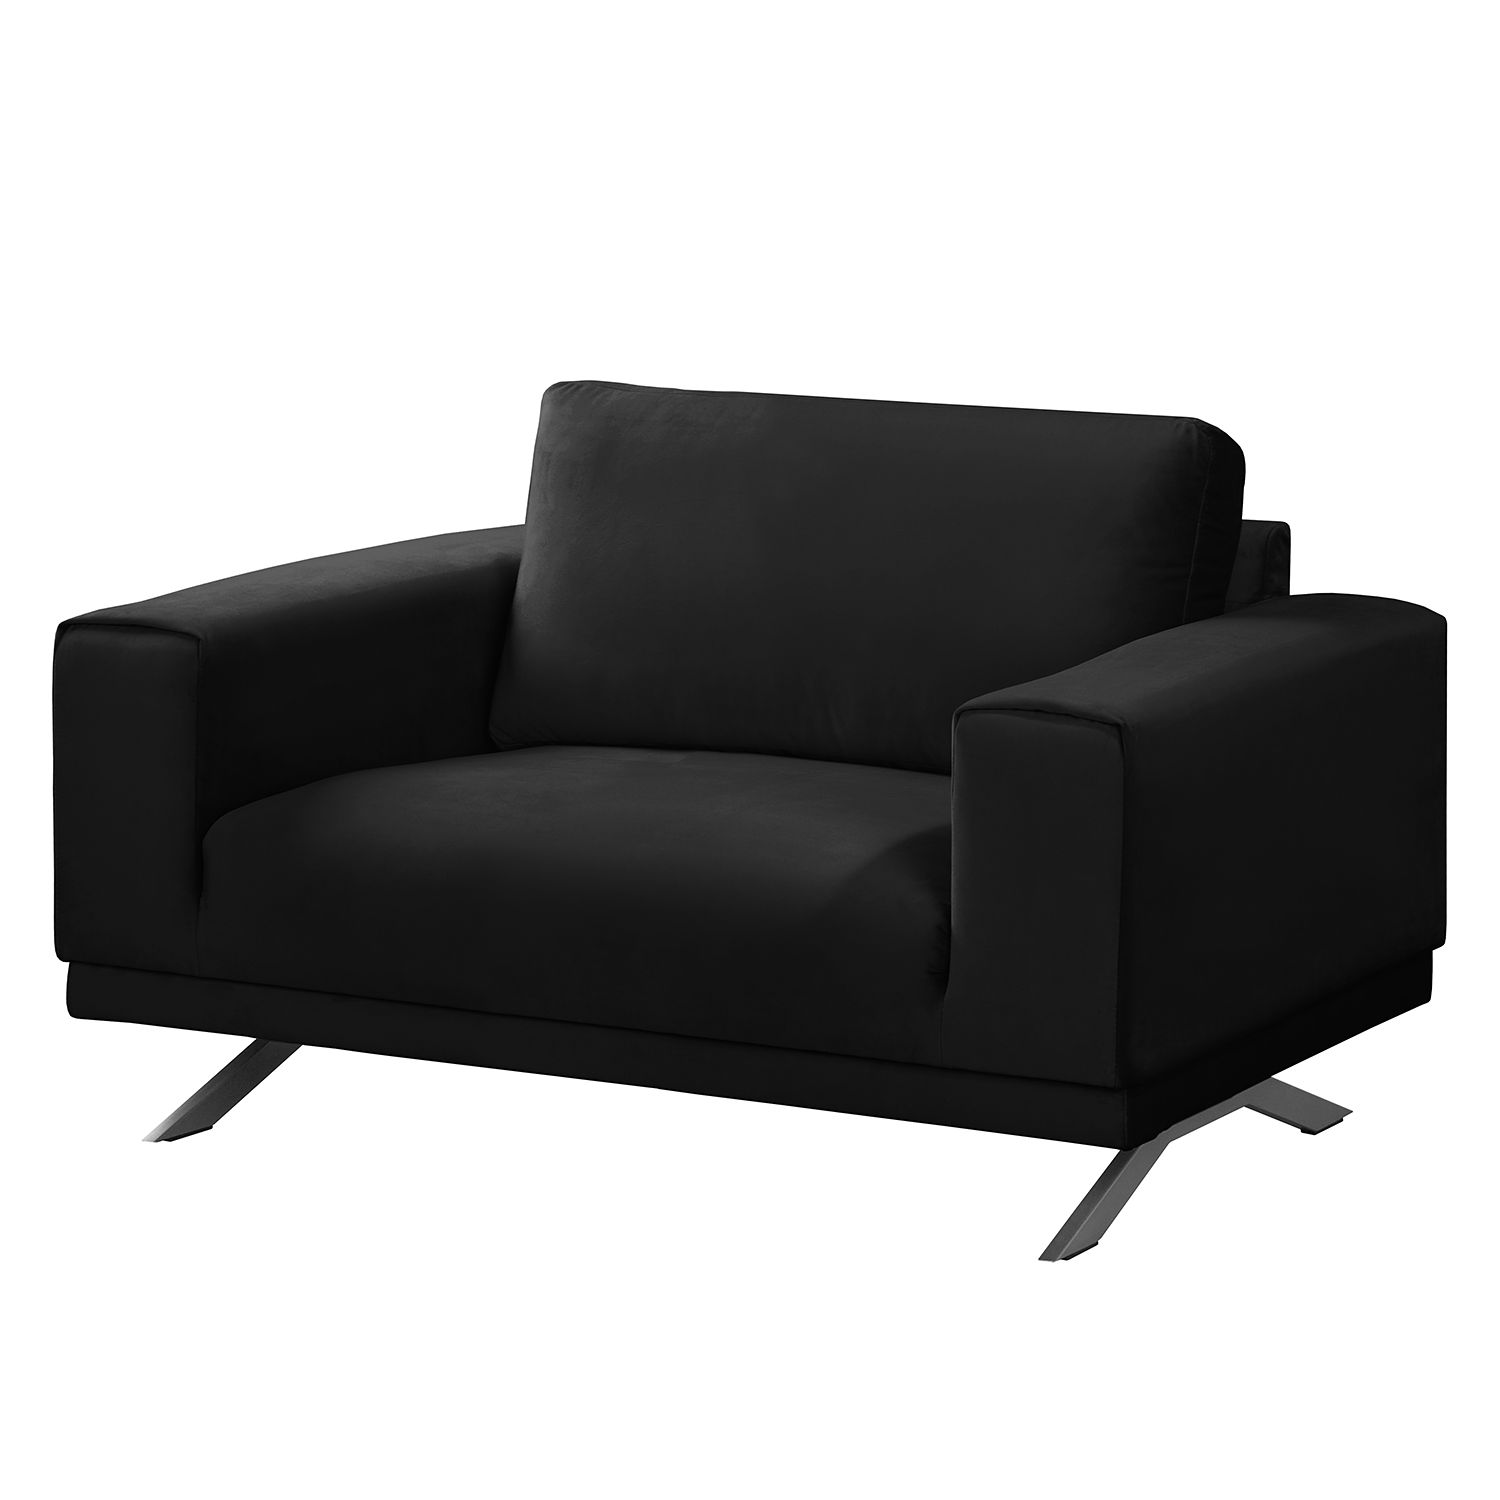 Fauteuil Lorcy - Velours - Anthracite, Fredriks